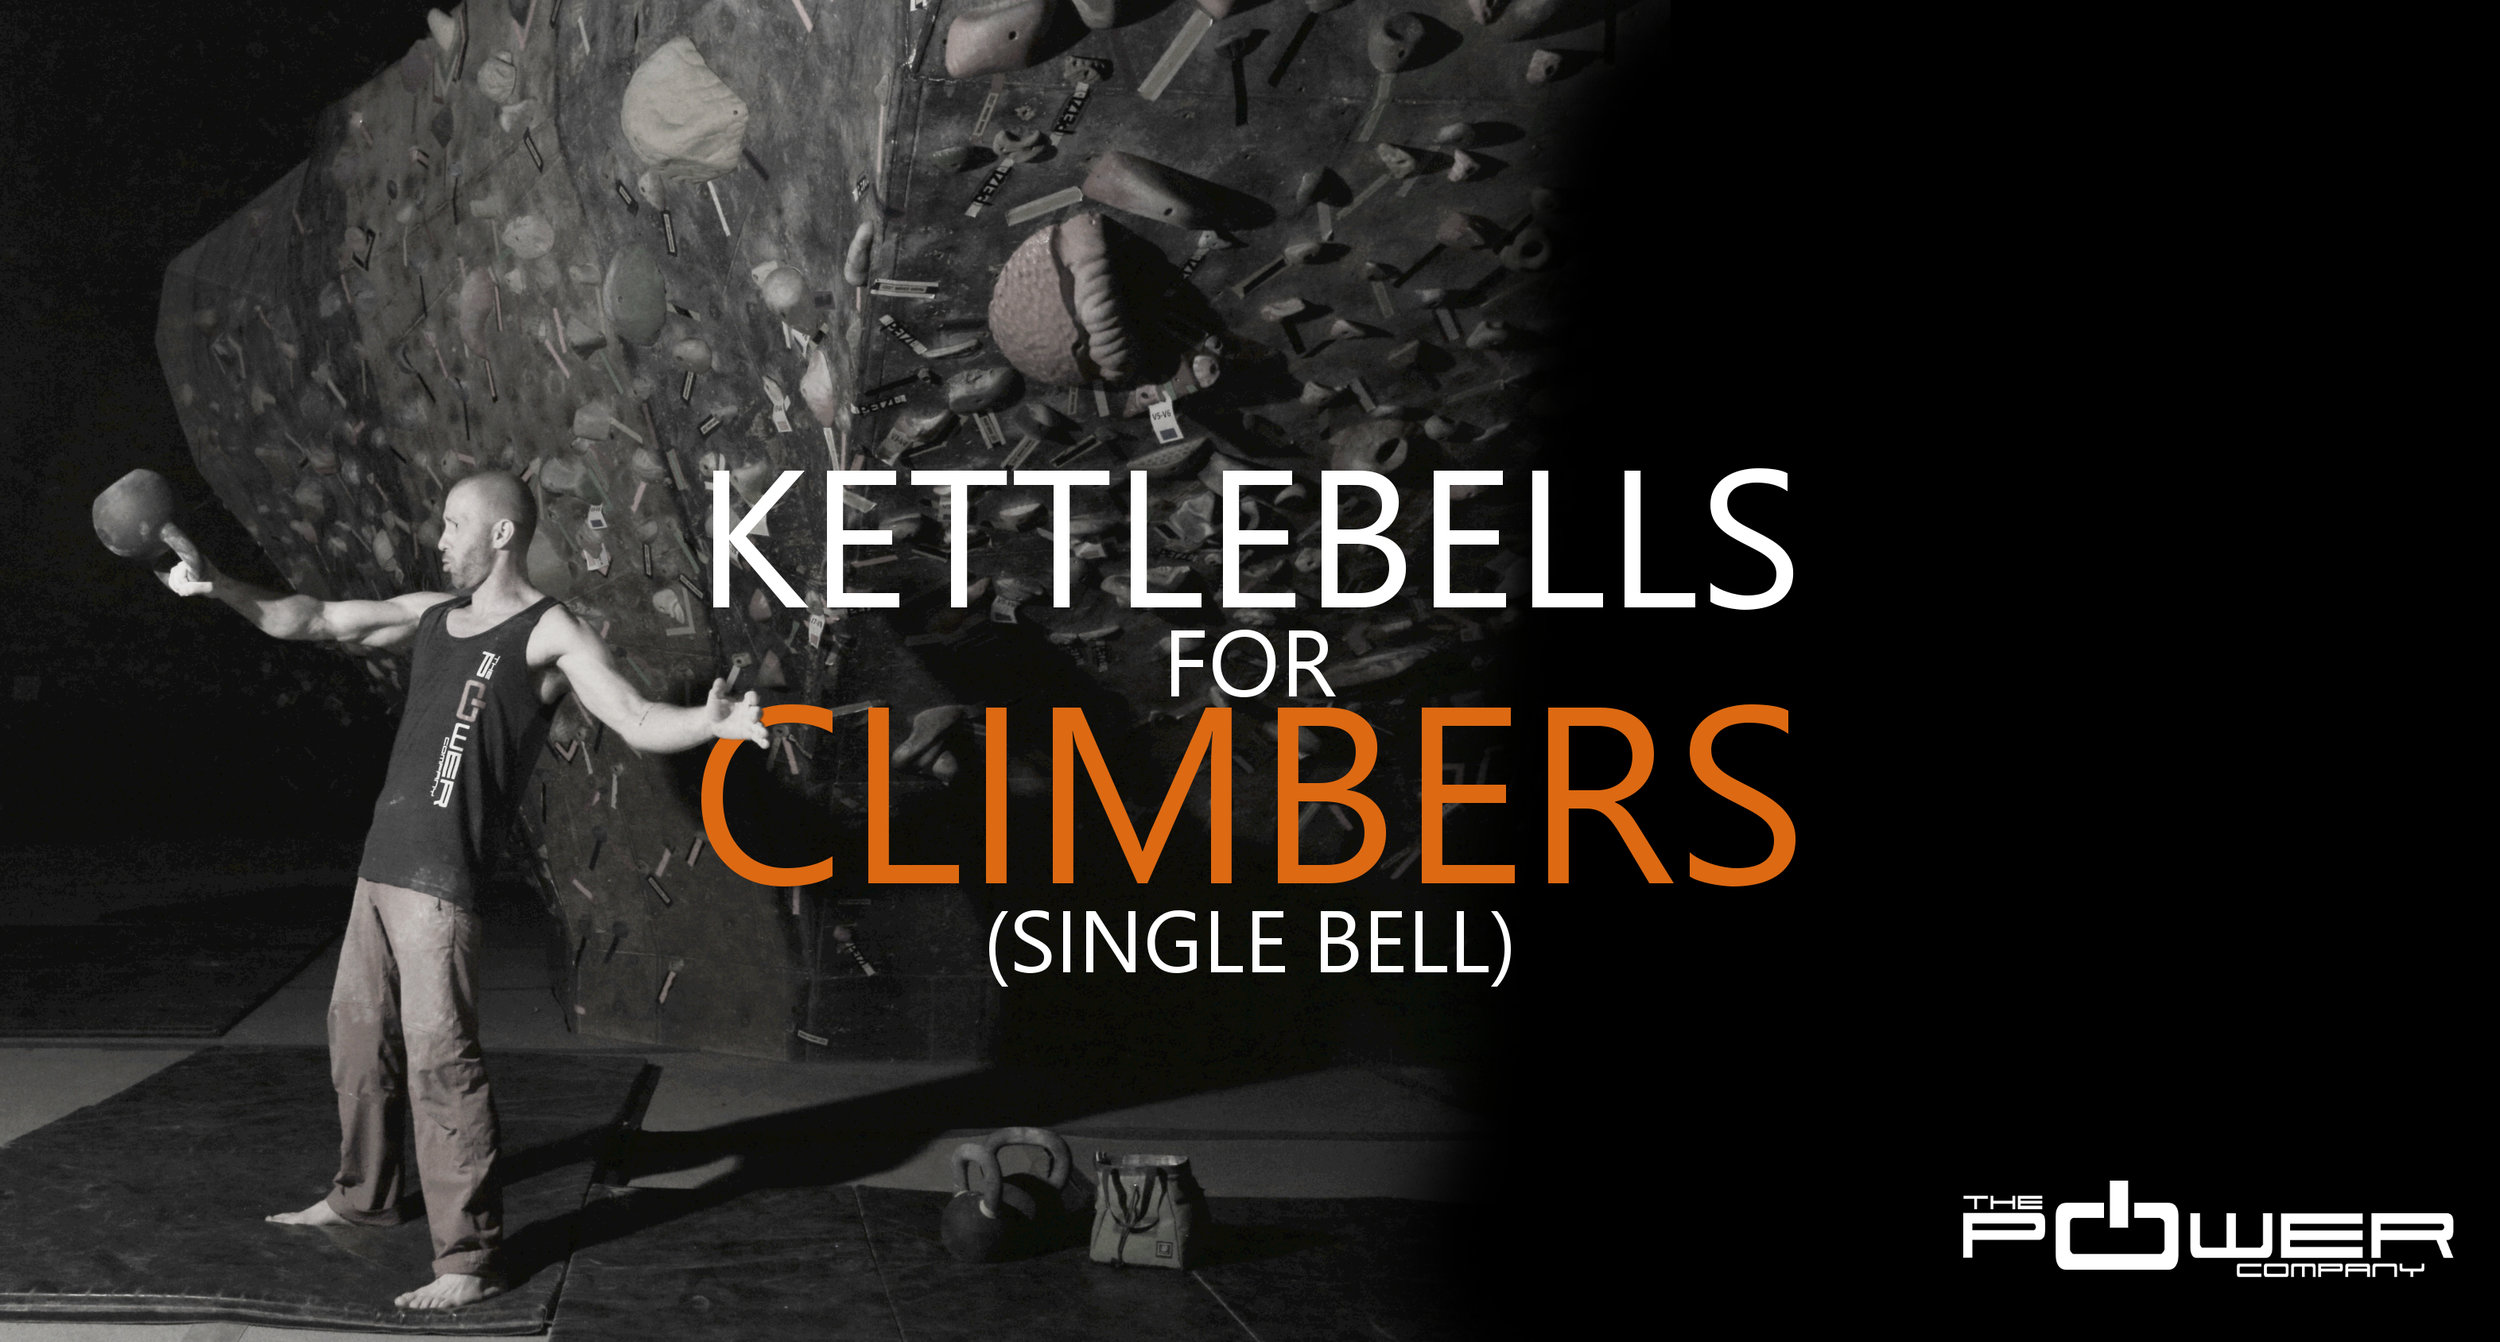 Check out our Kettlebells for Climbers Ebook Training Program for $20, written by Paul and Kris.